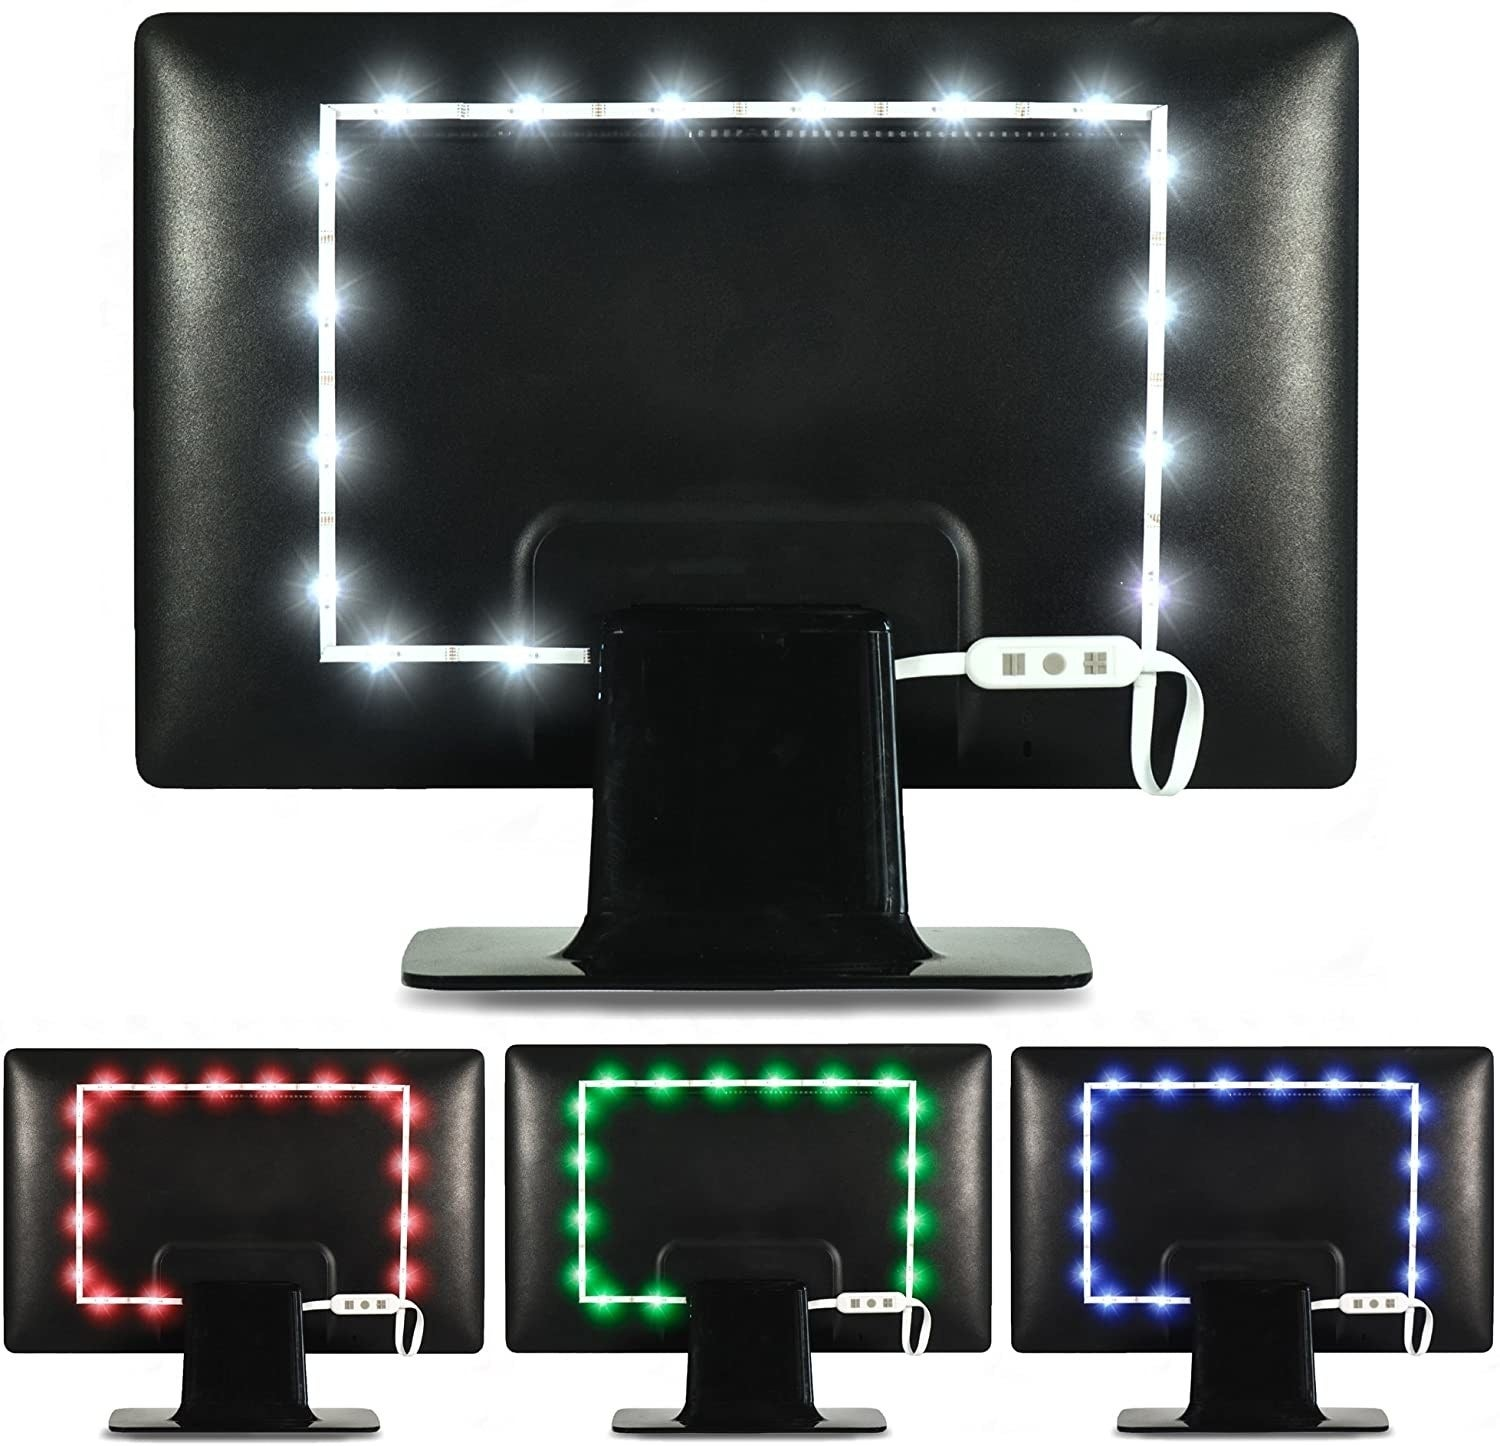 imagery showing how the backlights are set up behind the screens and showcasing the different color options